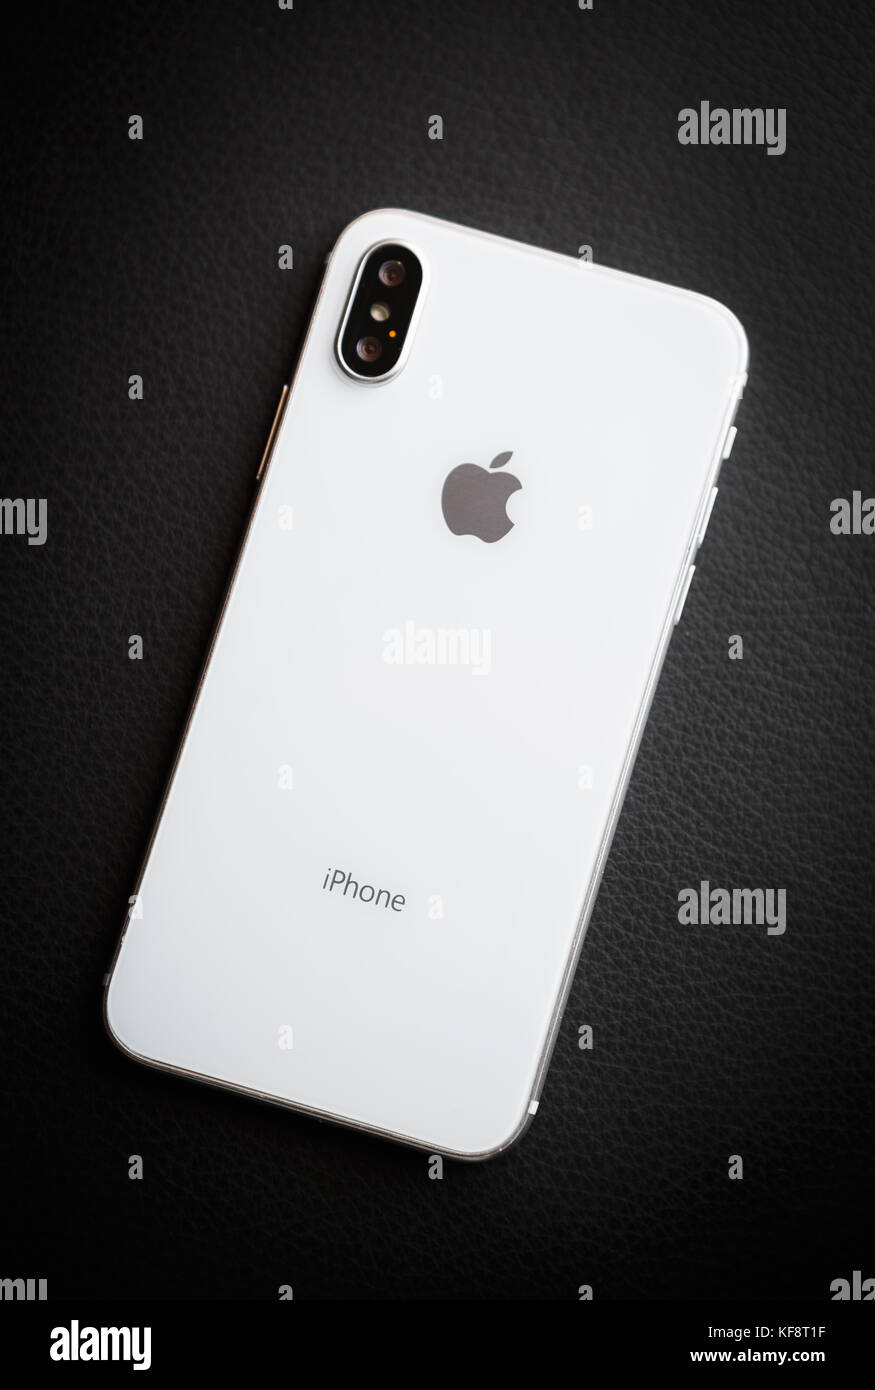 hight resolution of new iphone x model close up modern iphone 10 smart phone model trendy mobile device white apple iphone mobile phone with big screen and dual camera